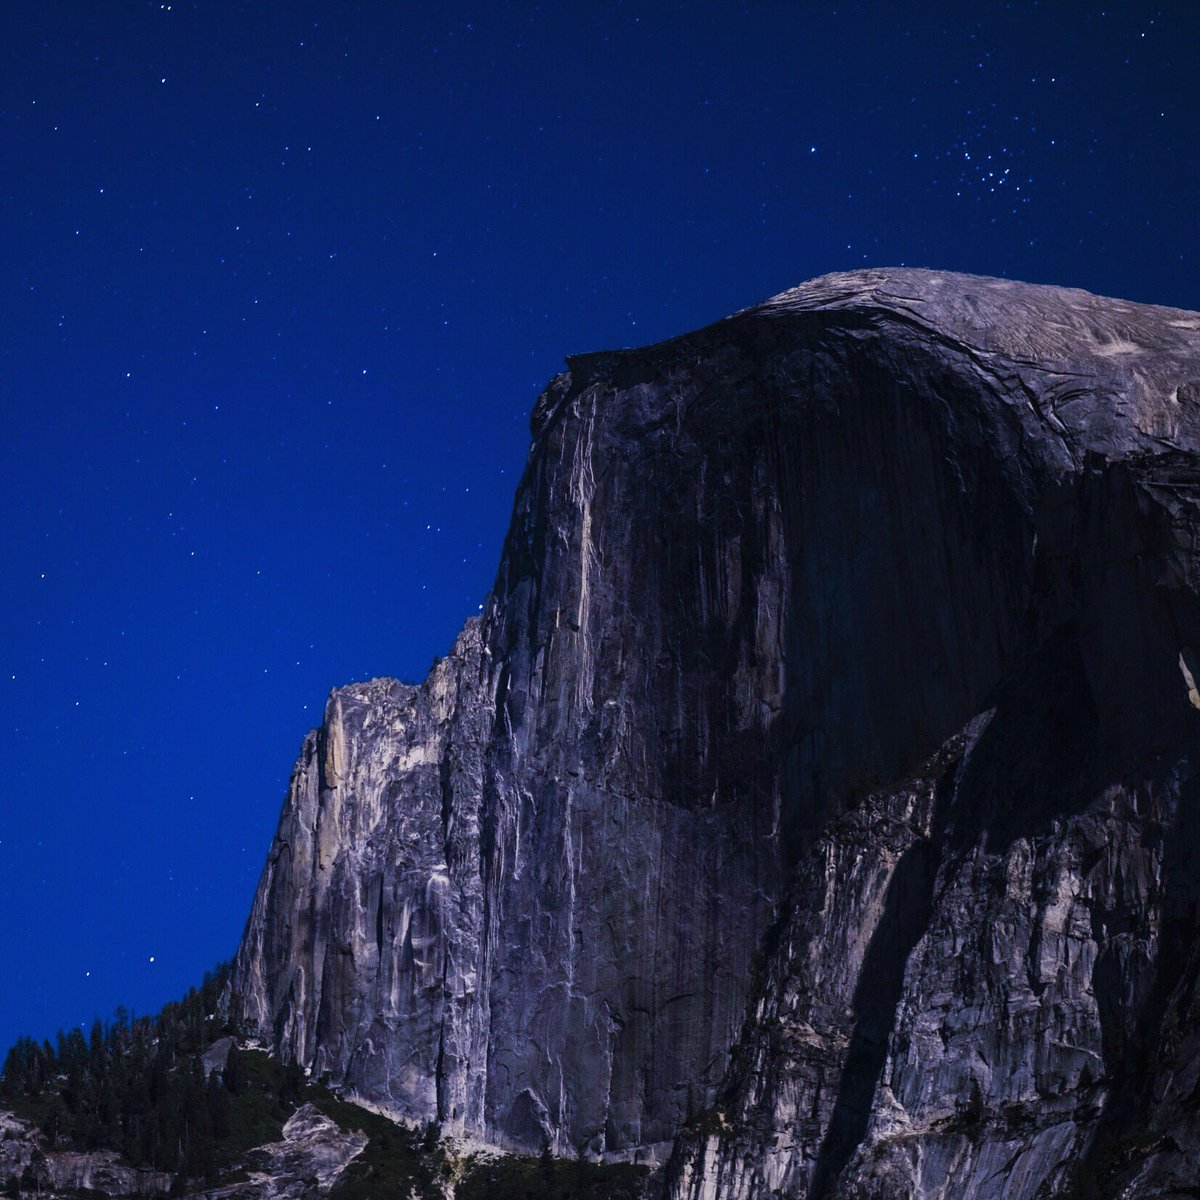 Our national parks are a treasure. Thanks @YosemiteNPS for your incredible work in maintaining all this for us to enjoy.